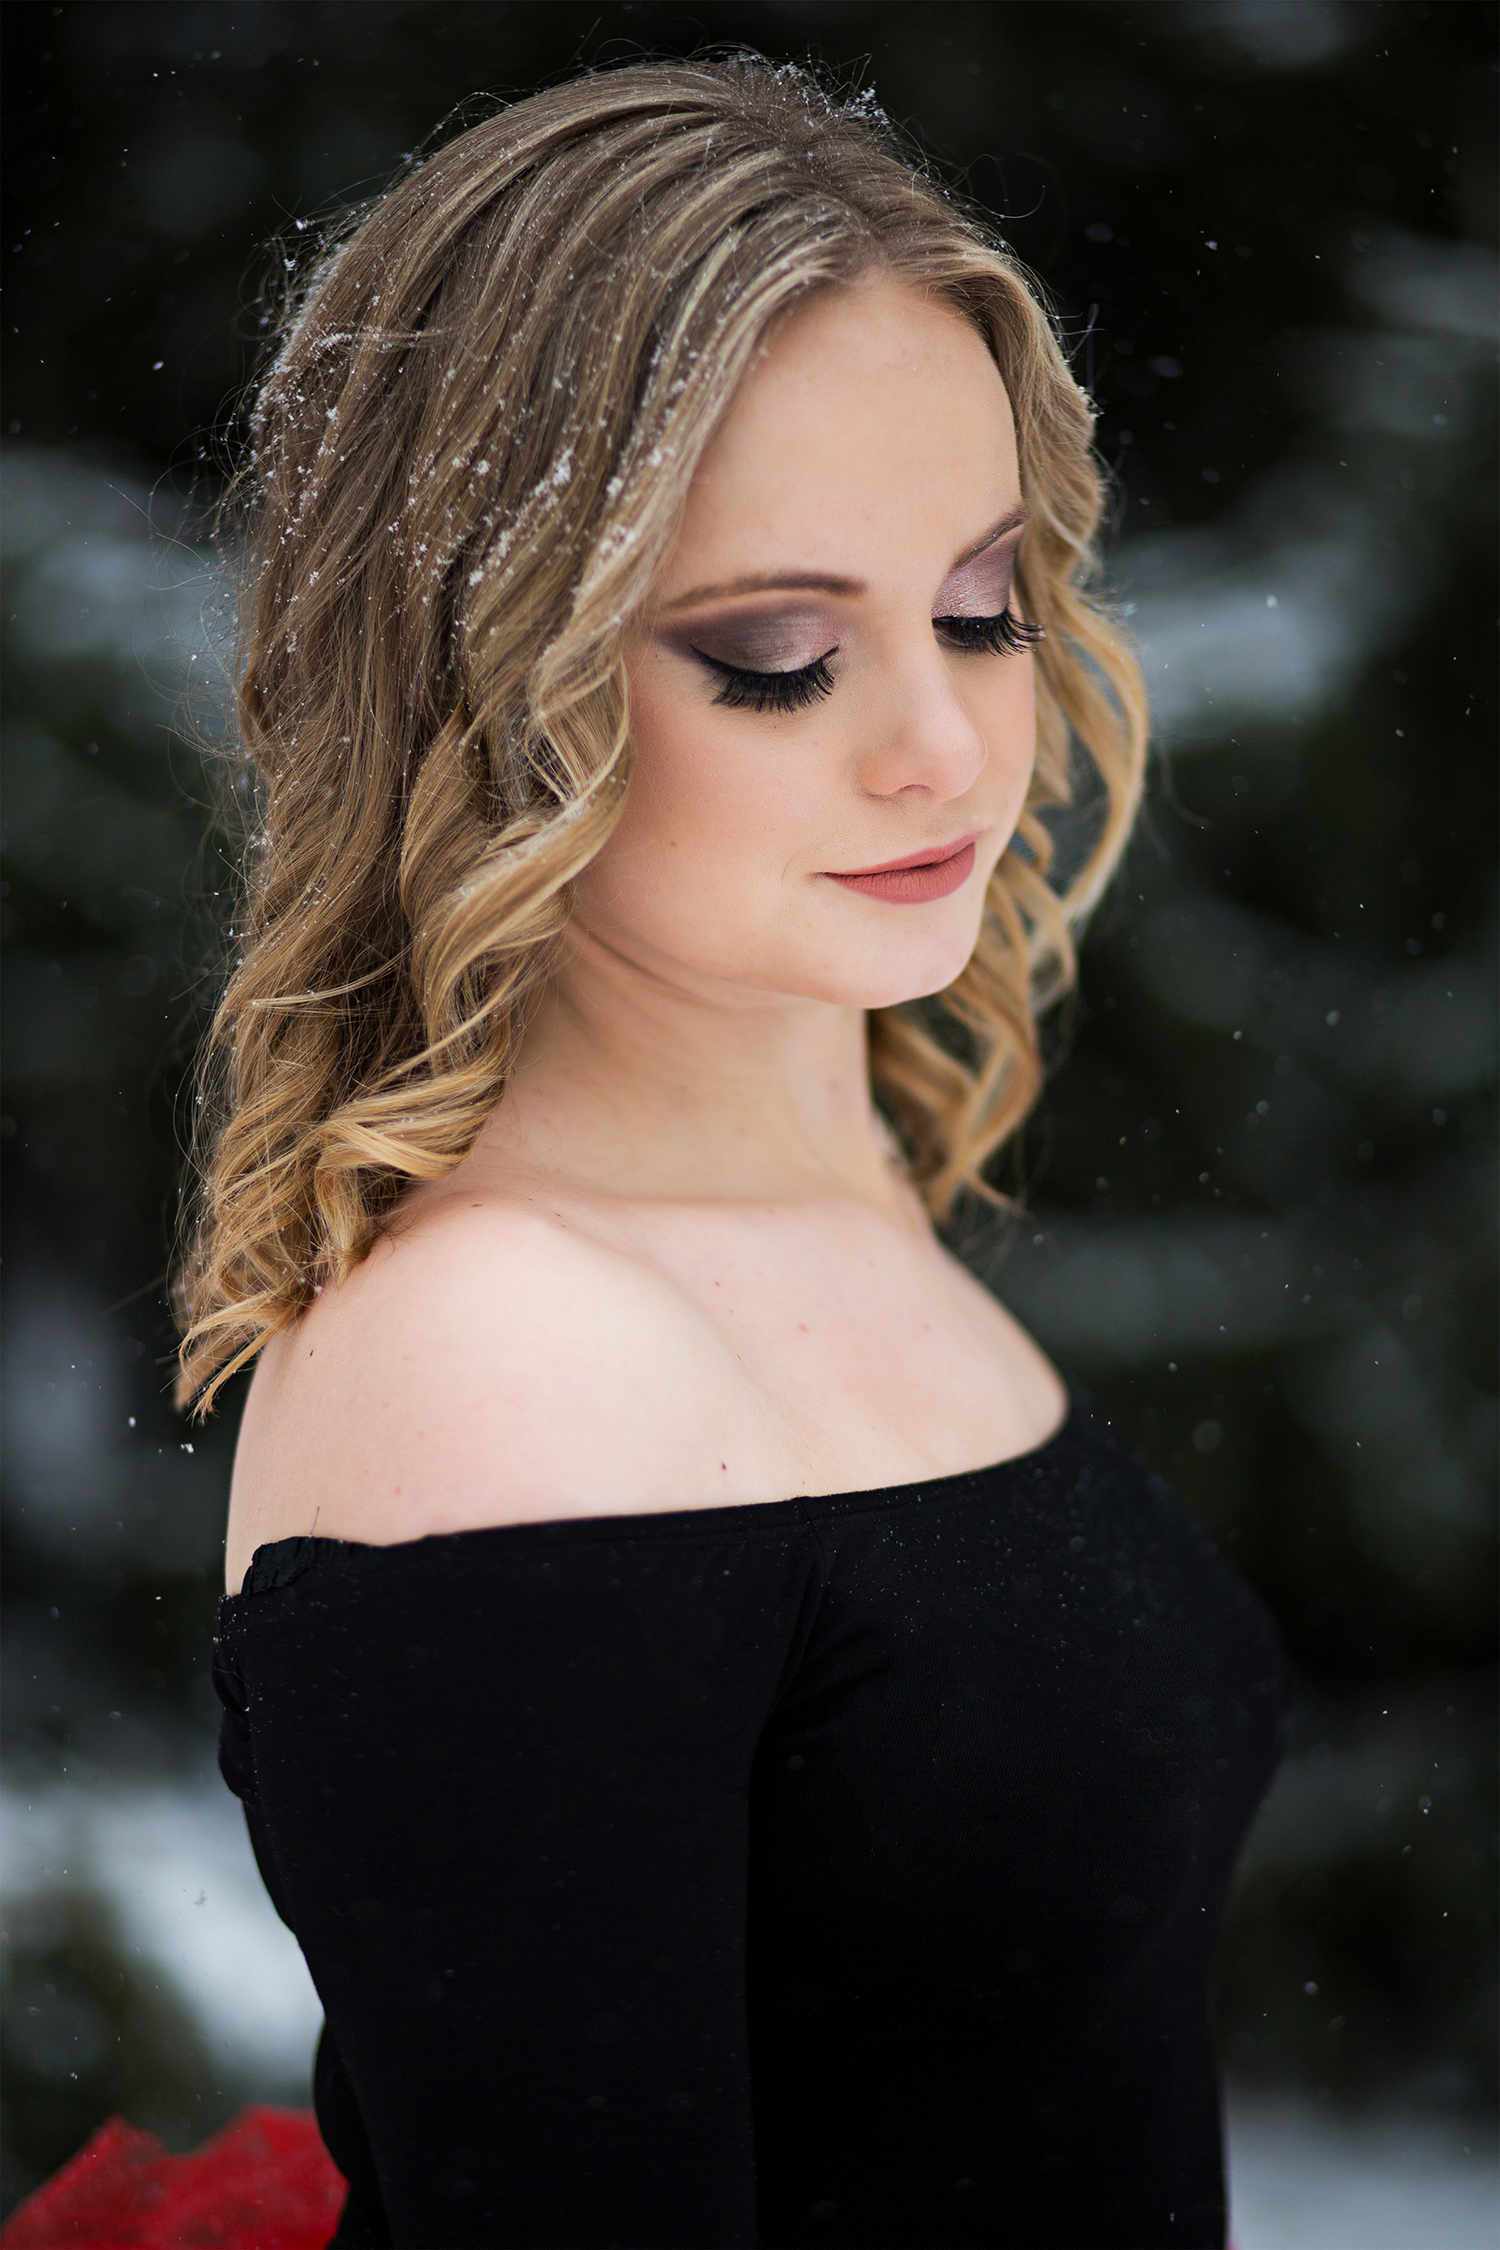 a girl looking down showing off her eye makeup.